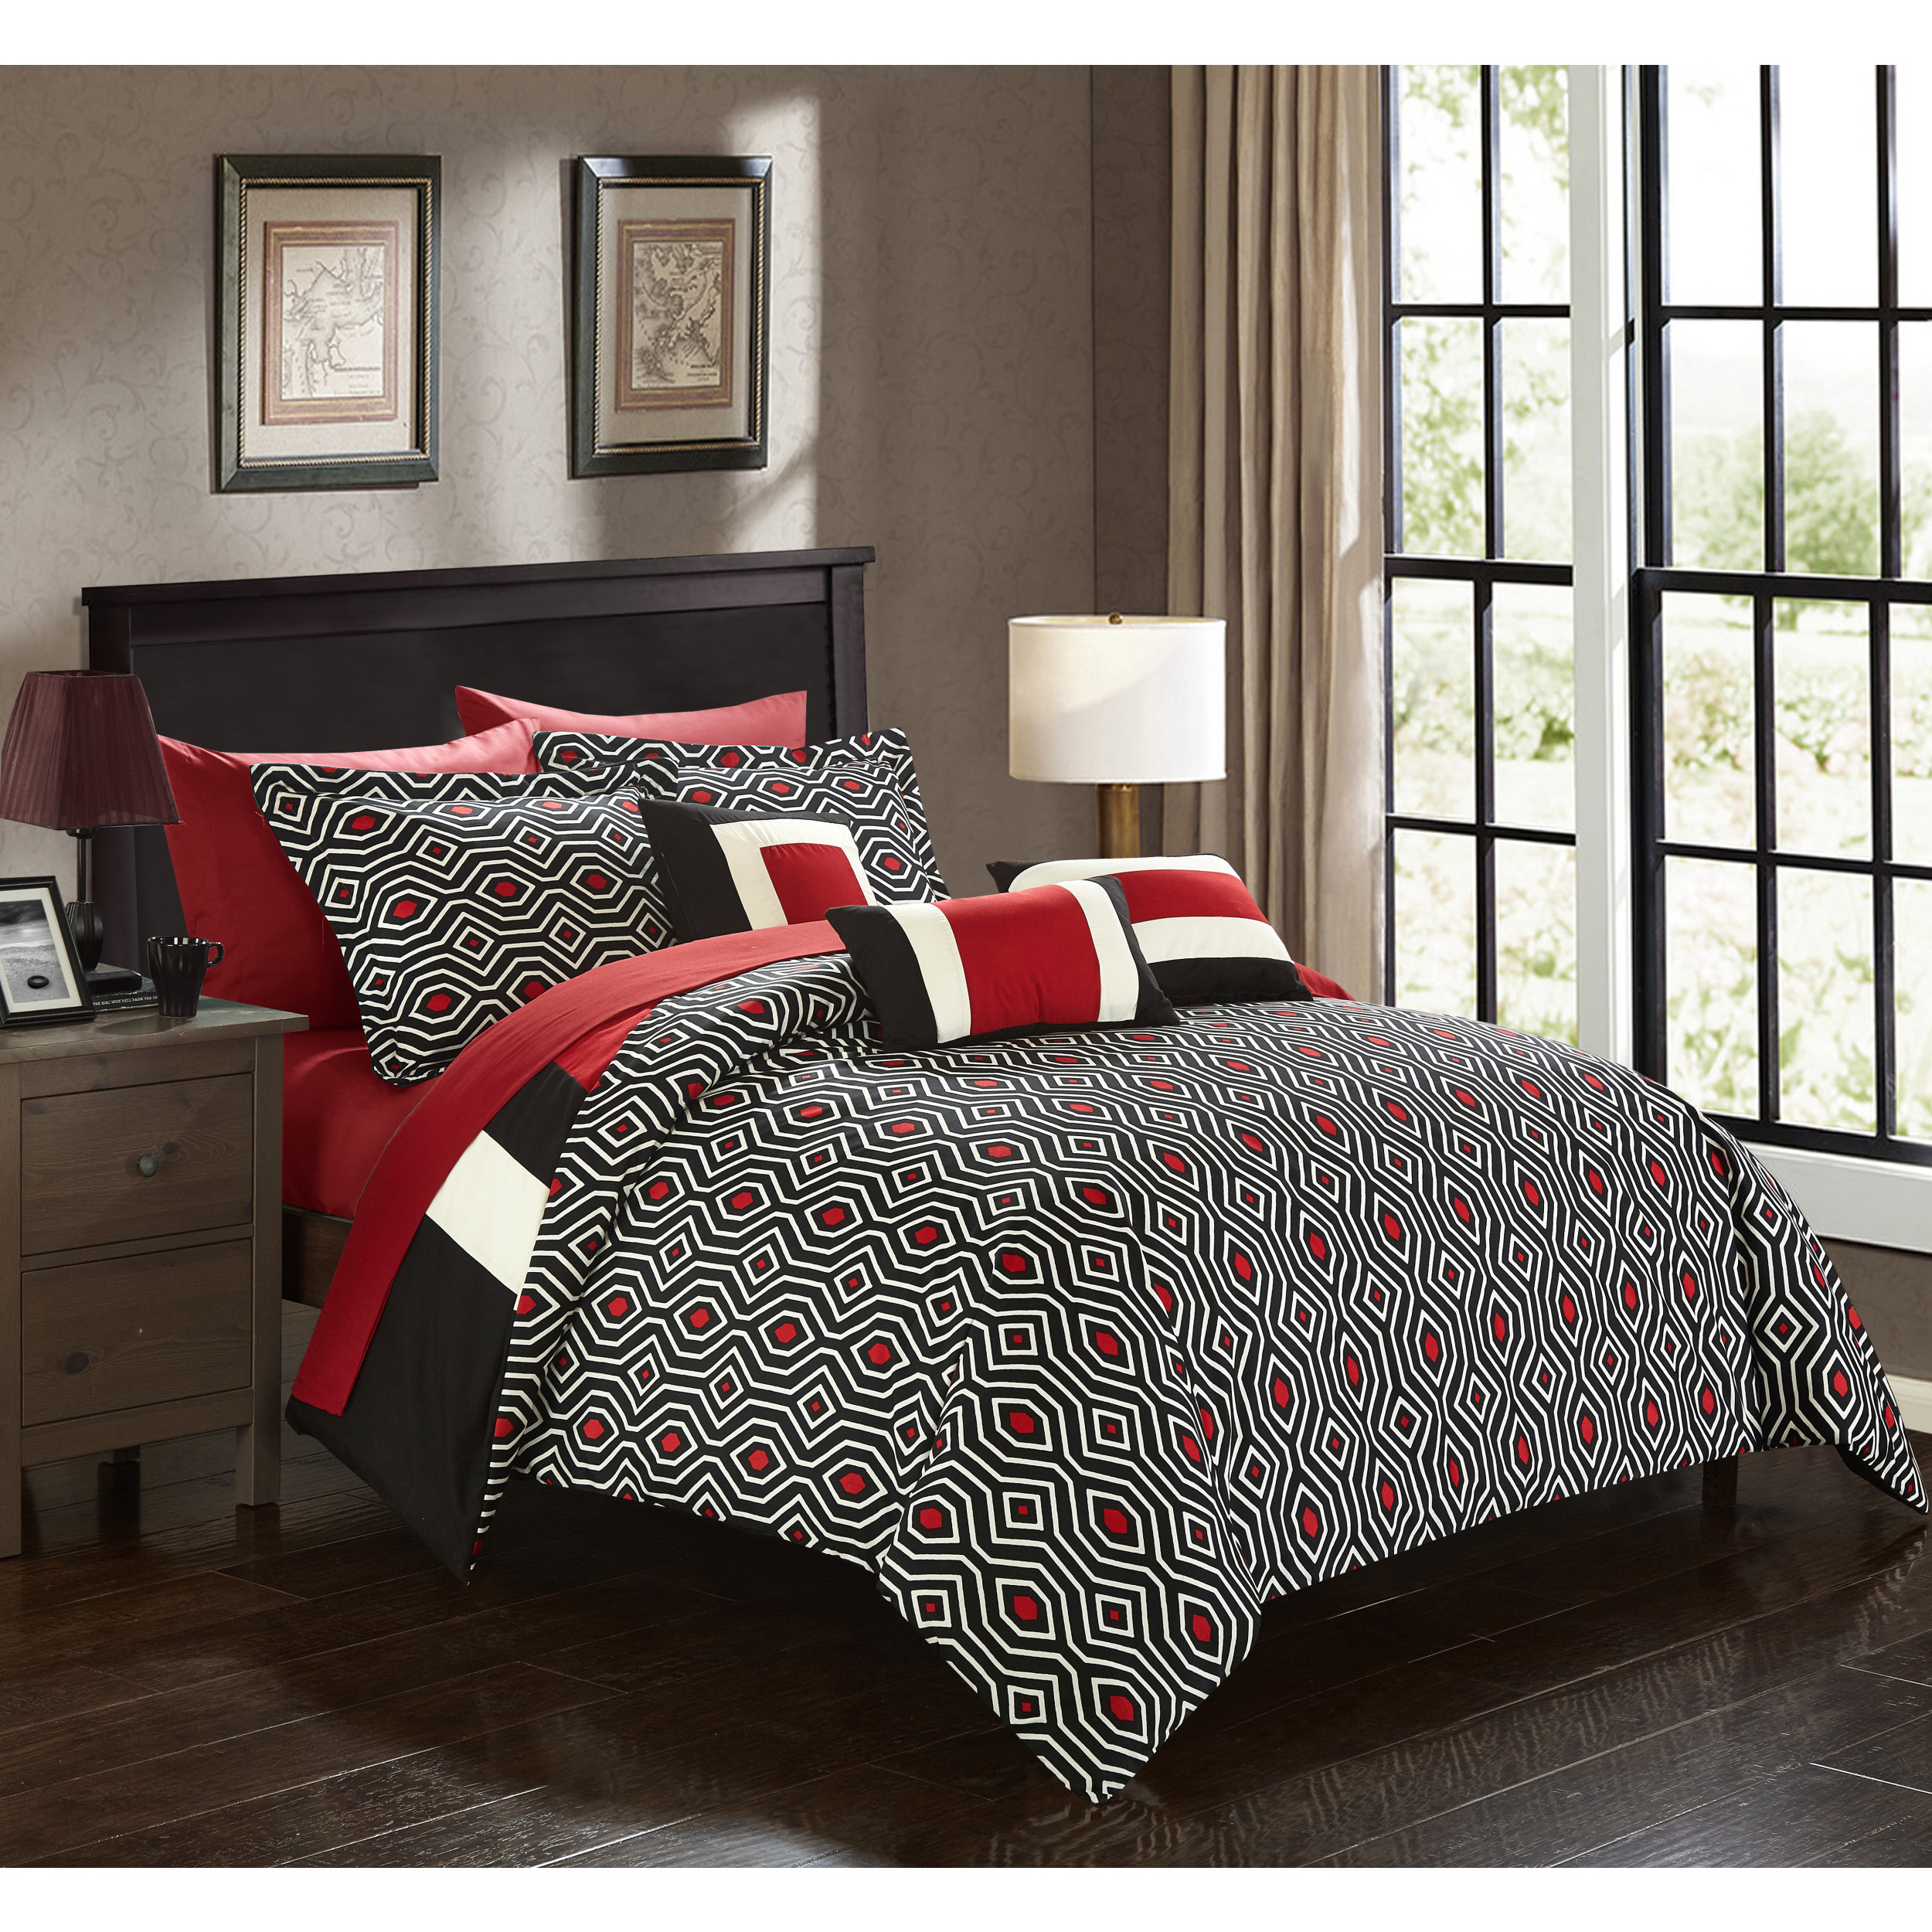 com comforter hotel walmart sets ip set piece style